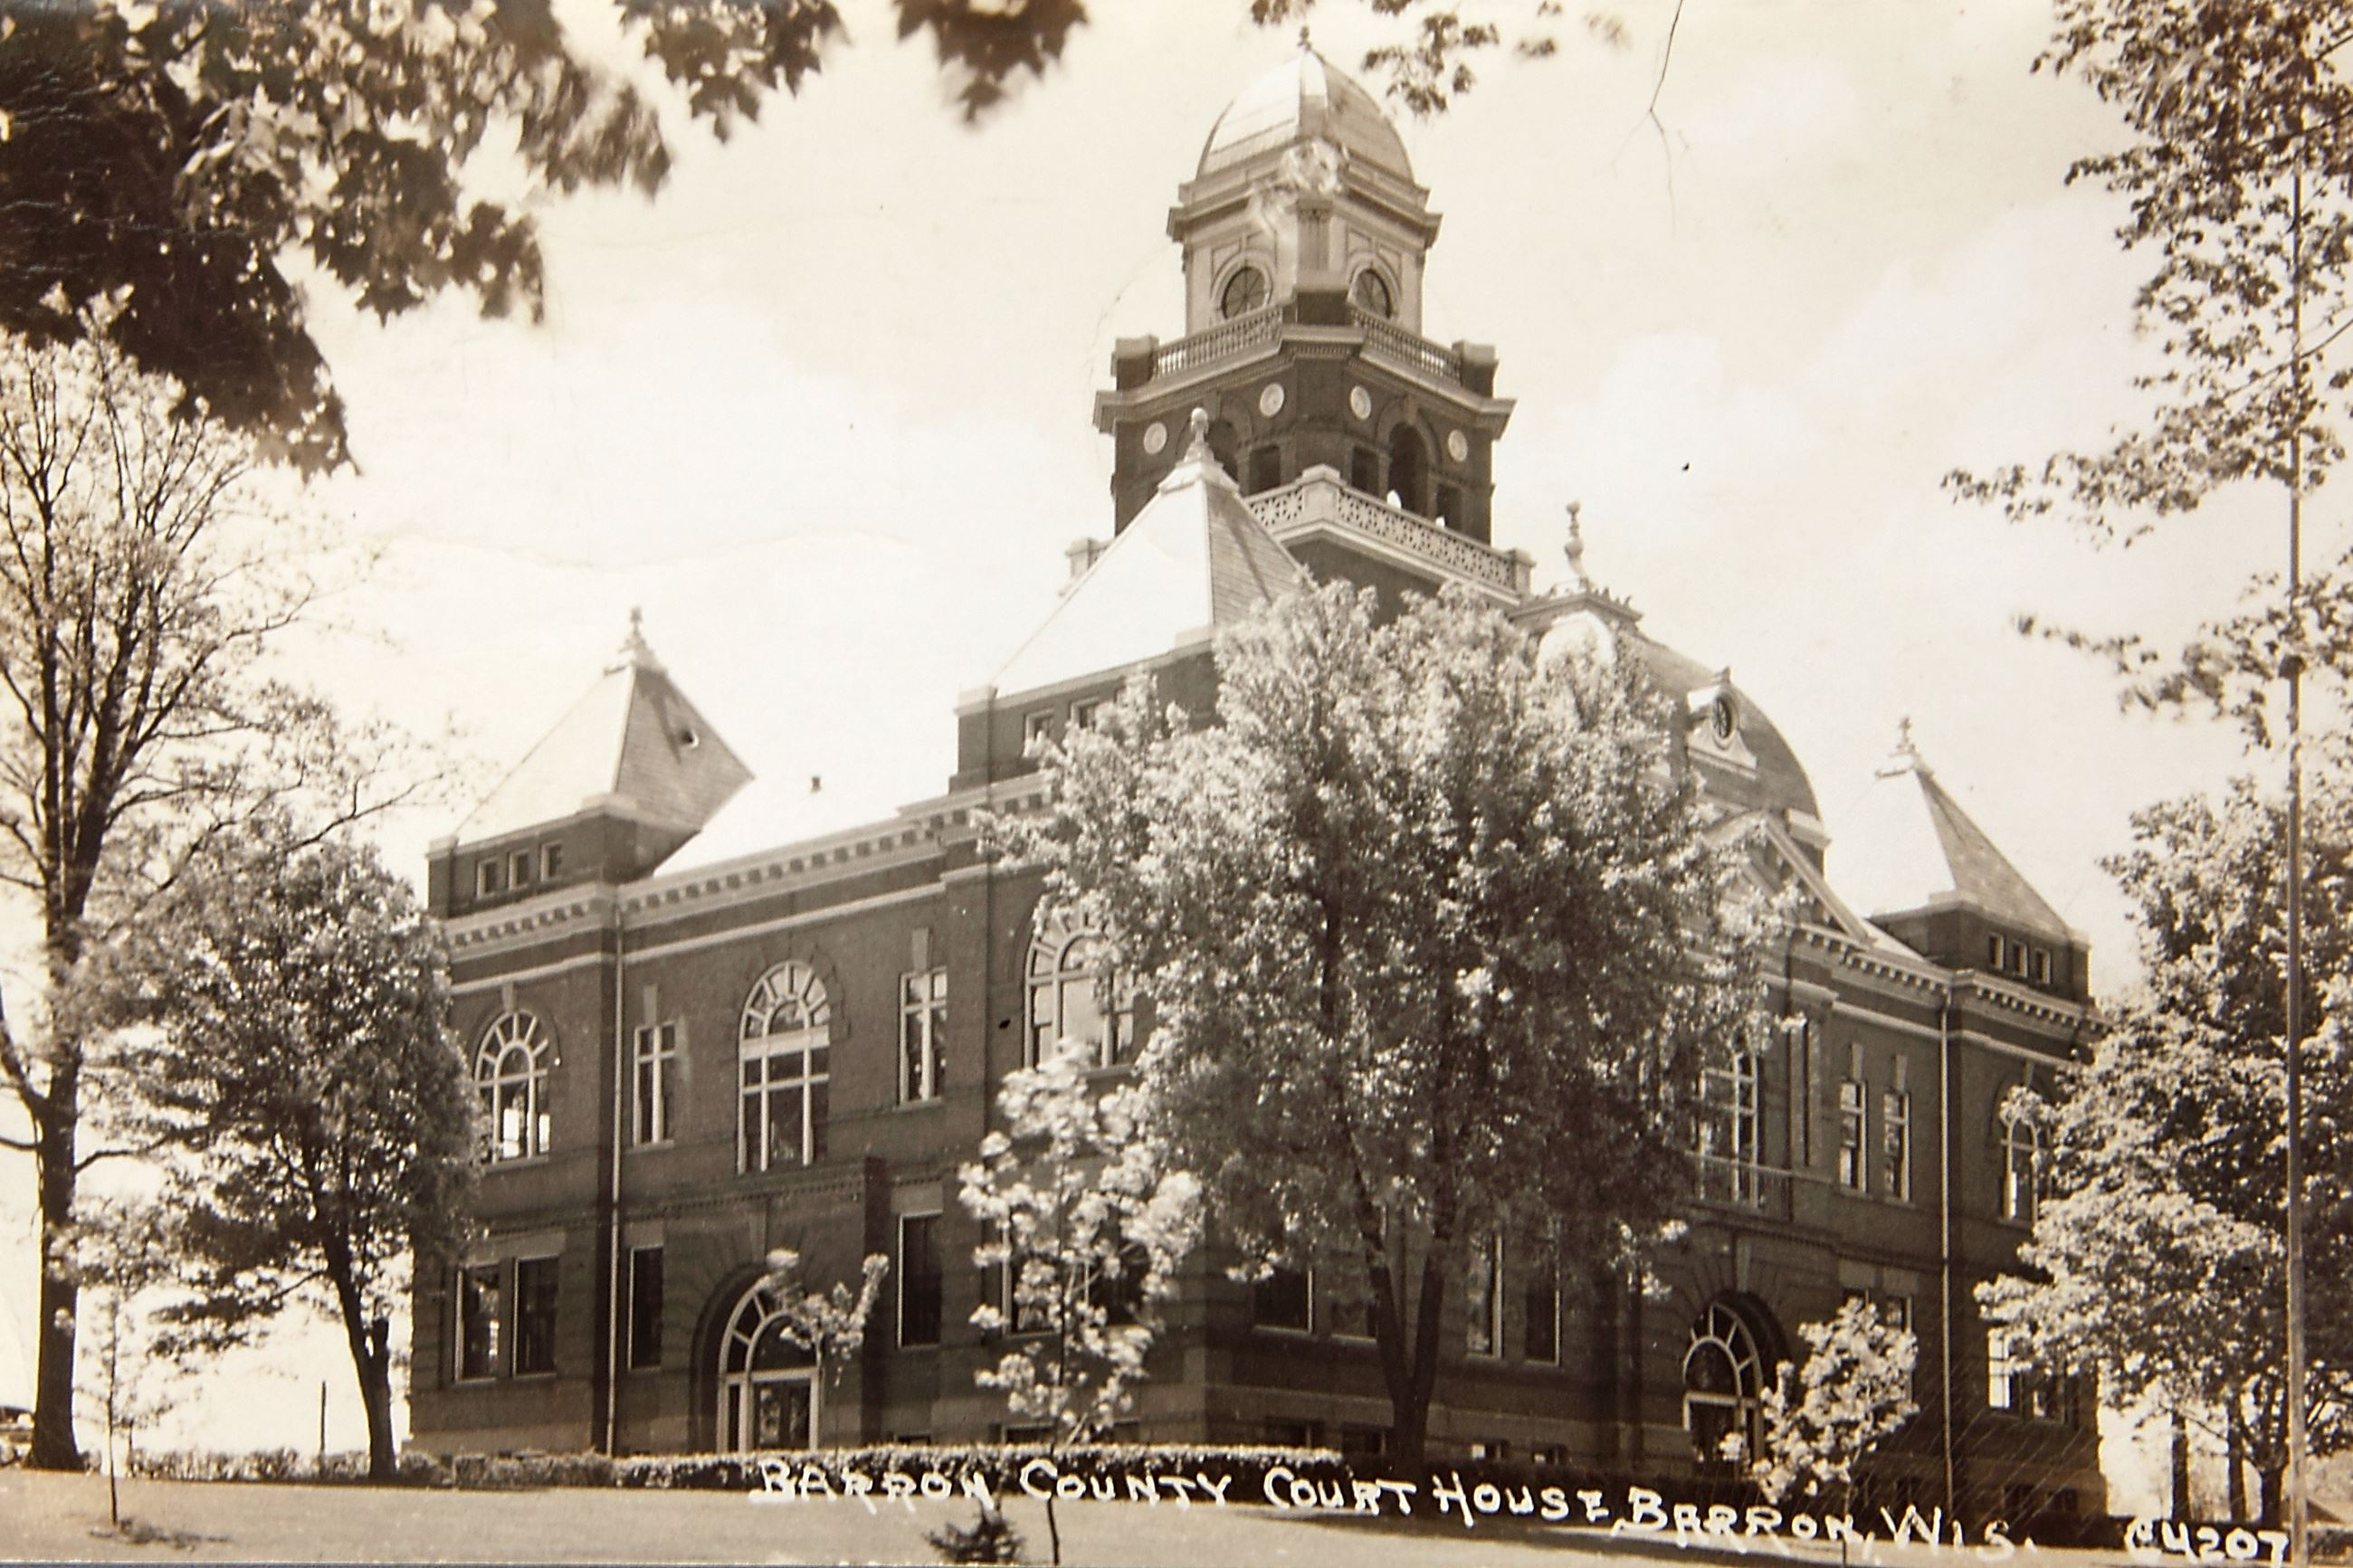 Vintage Barron - Barron County Courthouse